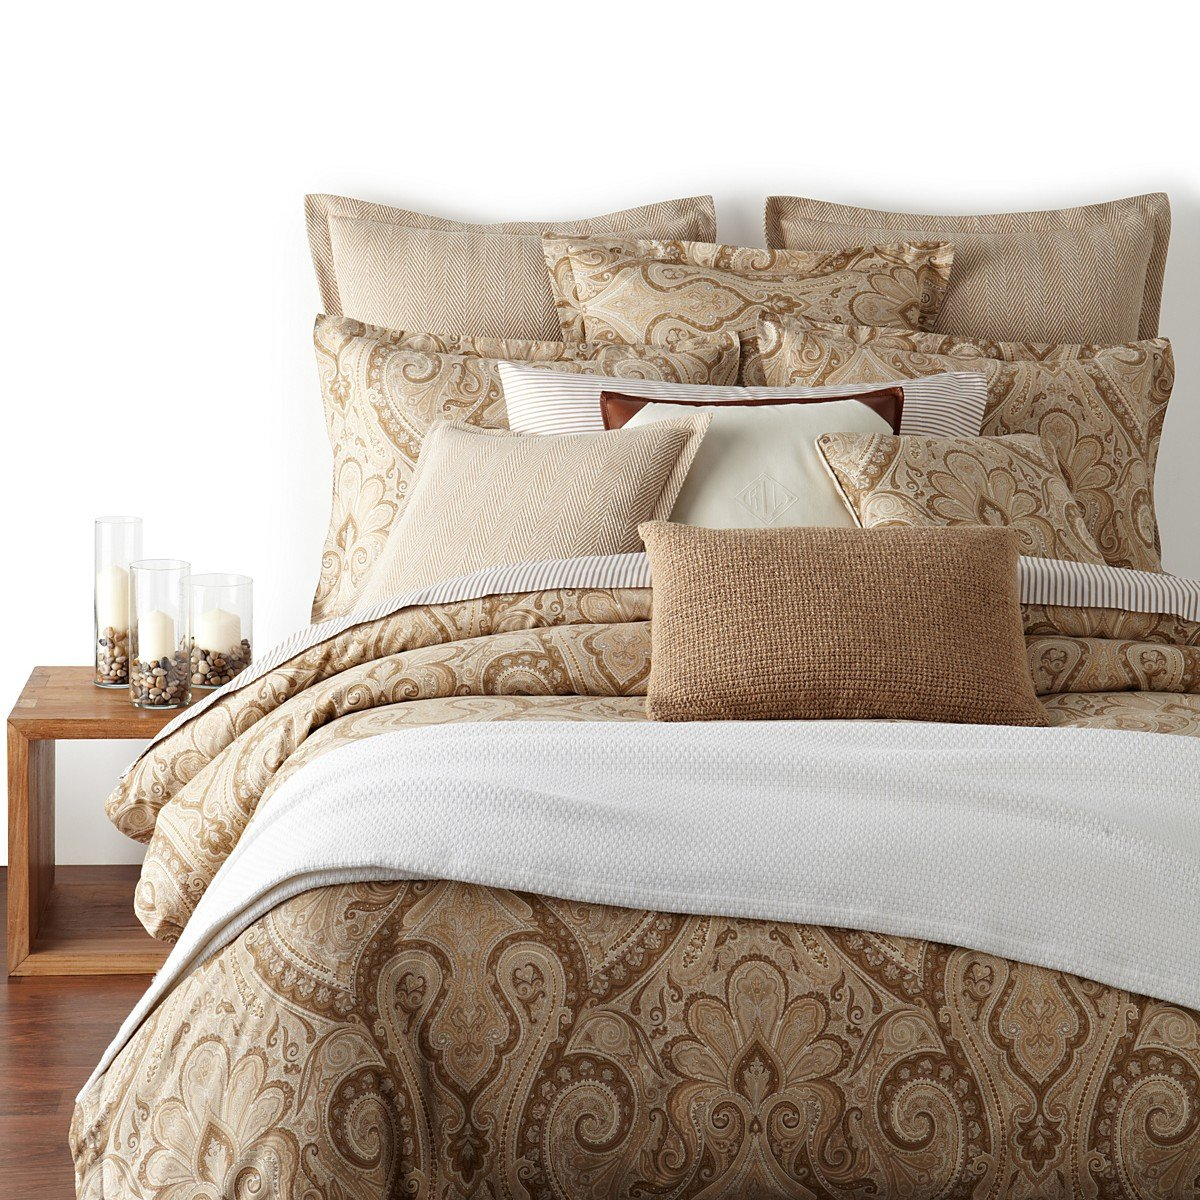 ralph lauren duvet cover Amazon.com: Ralph Lauren Desert Spa Paisley Full/Queen Duvet  ralph lauren duvet cover